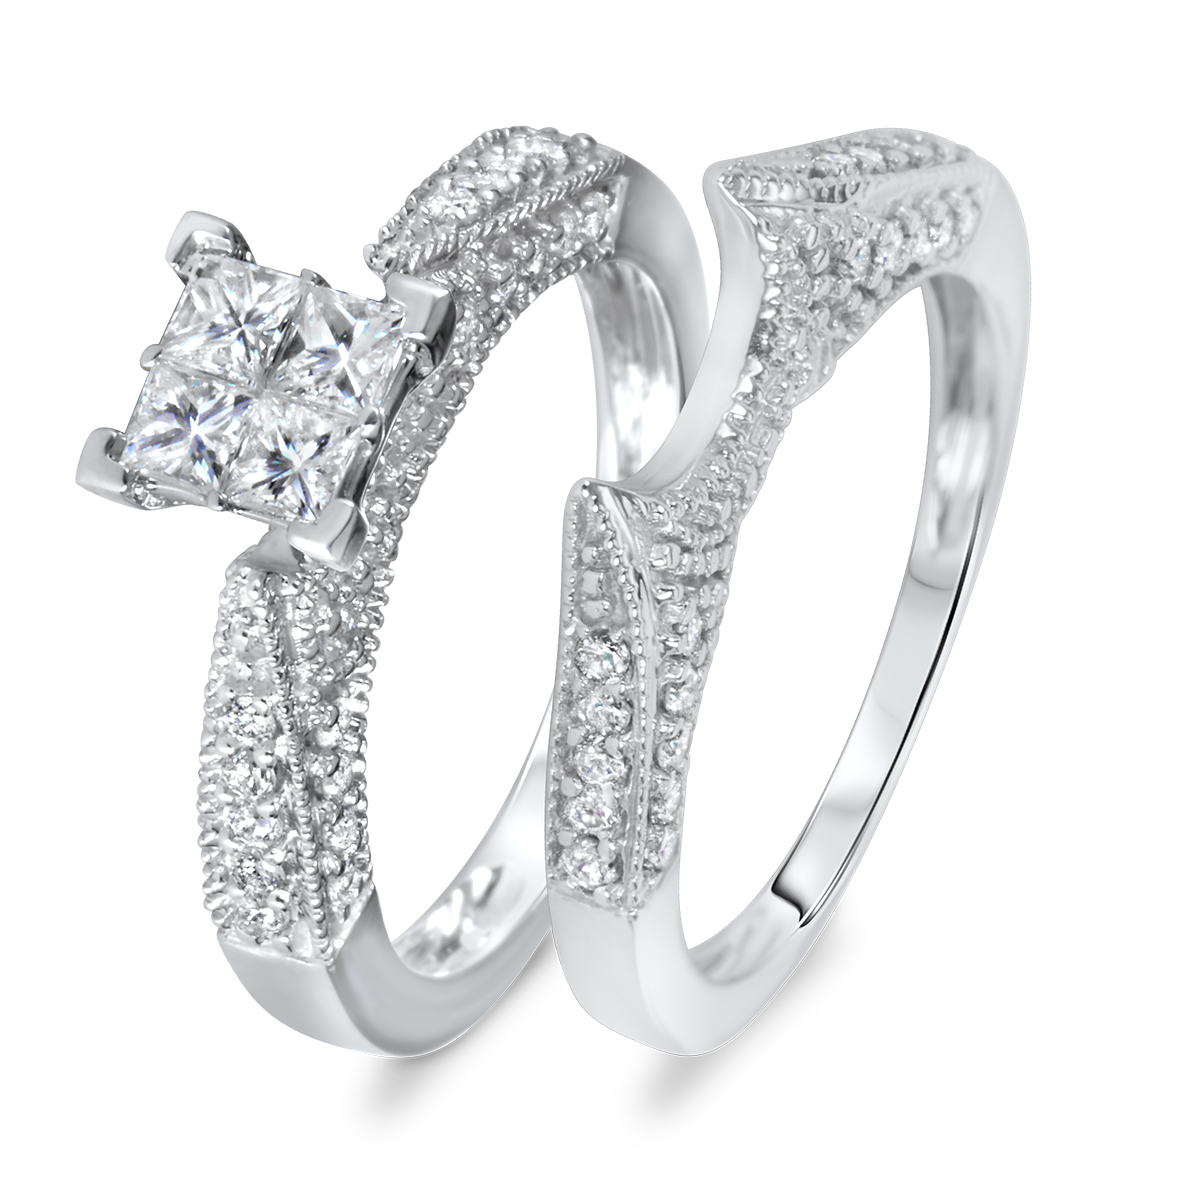 14k white gold solitaire bezel cz wedding rings set bridal wedding ring sets Wear a beautiful reminder of your commitment to your love This wedding ring set